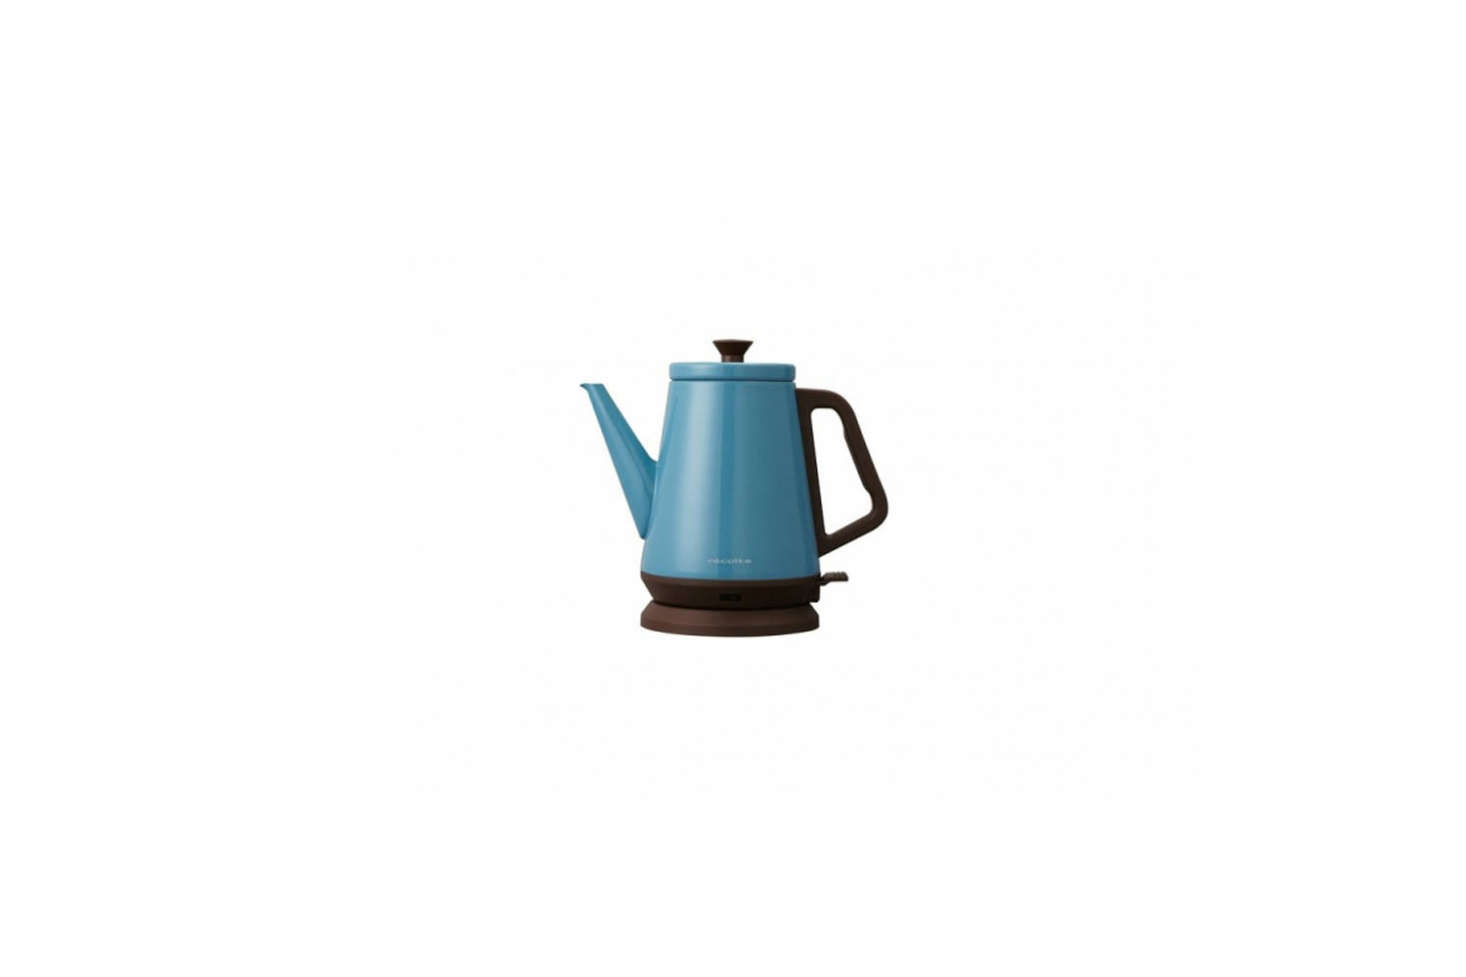 The Récolte Classic Libre Electric Kettle in blue is somethingMarcia and Durrell picked up on a trip to Hong Kong. You can find it on Amazon for $84.0